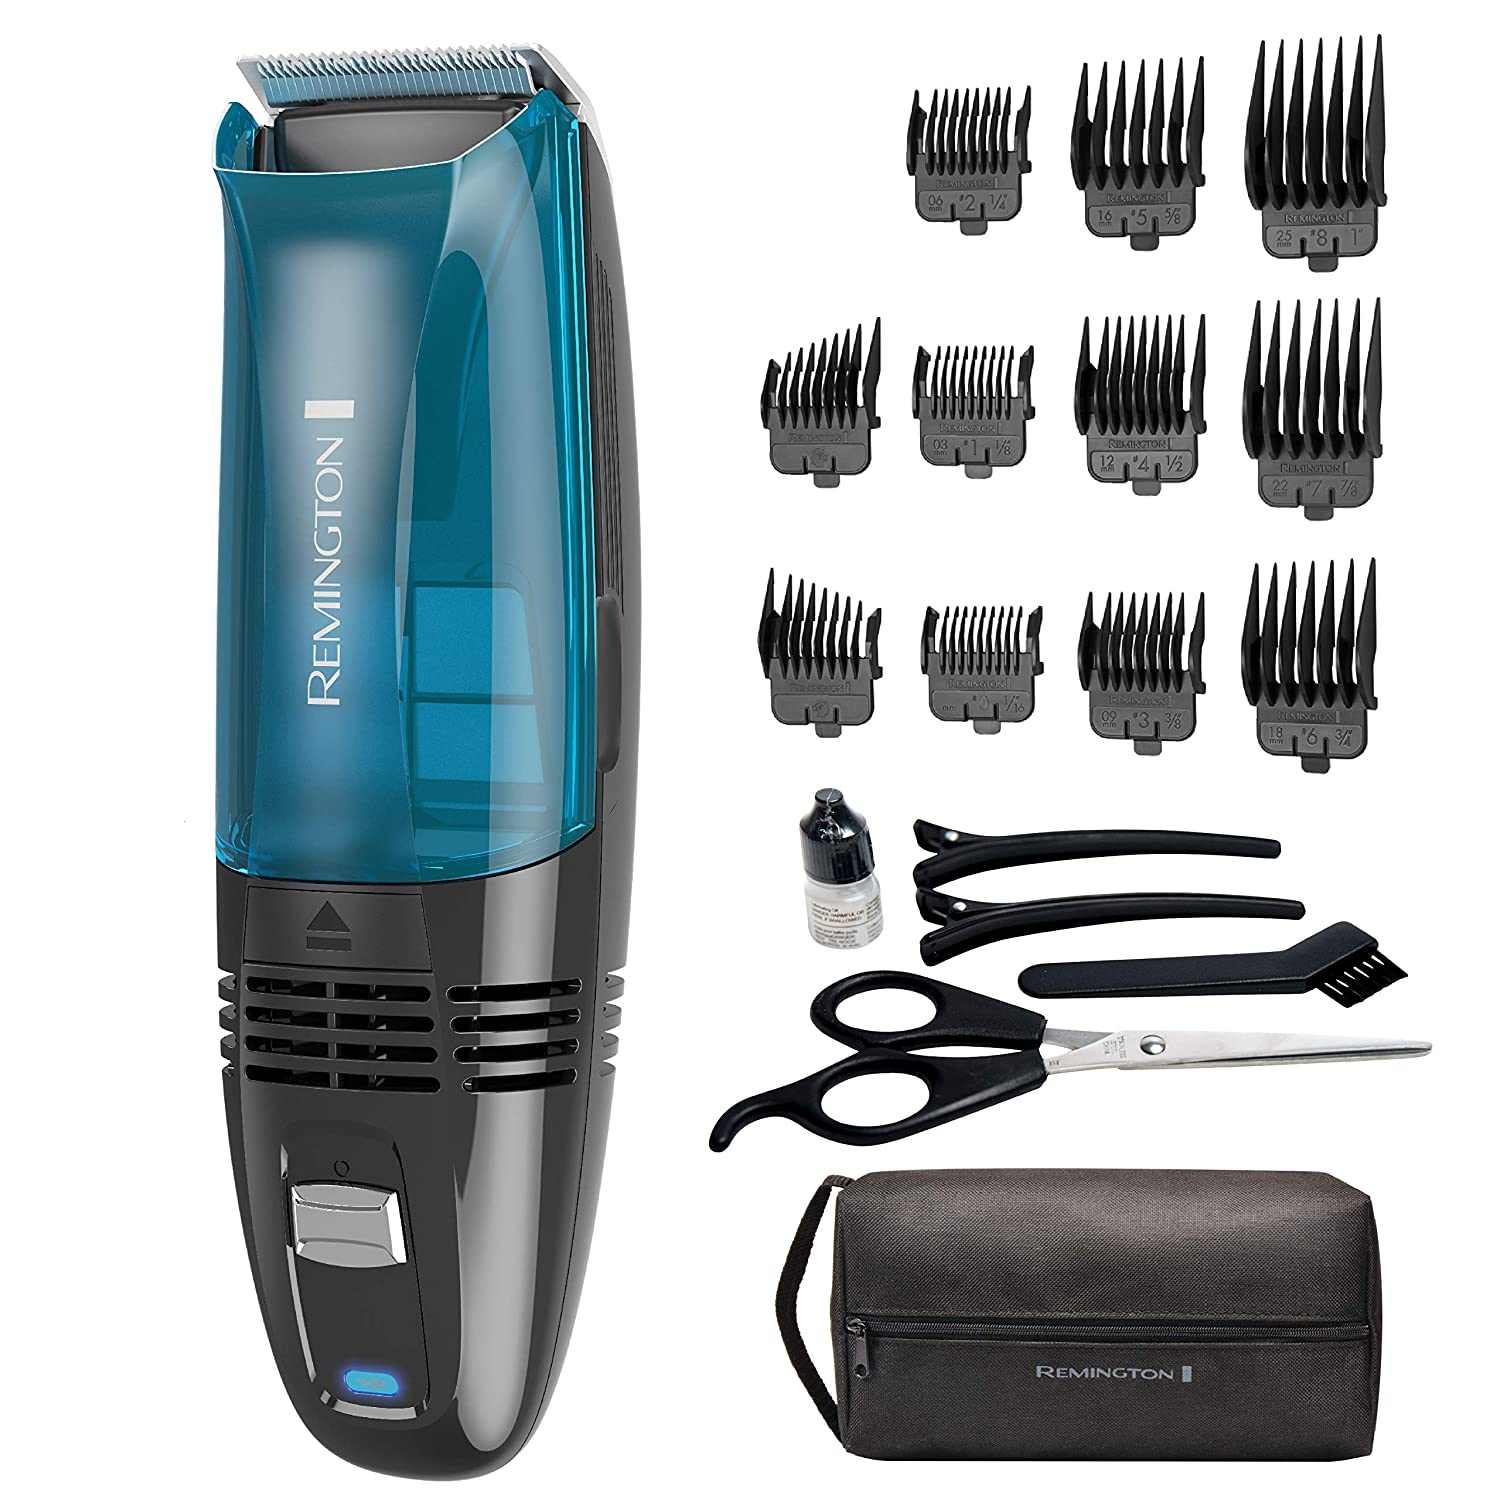 Remington Hc6550 Cordless Vacuum Haircut Kit, Vacuum Beard Trimmer, Hair Clippers for Men 18Piece